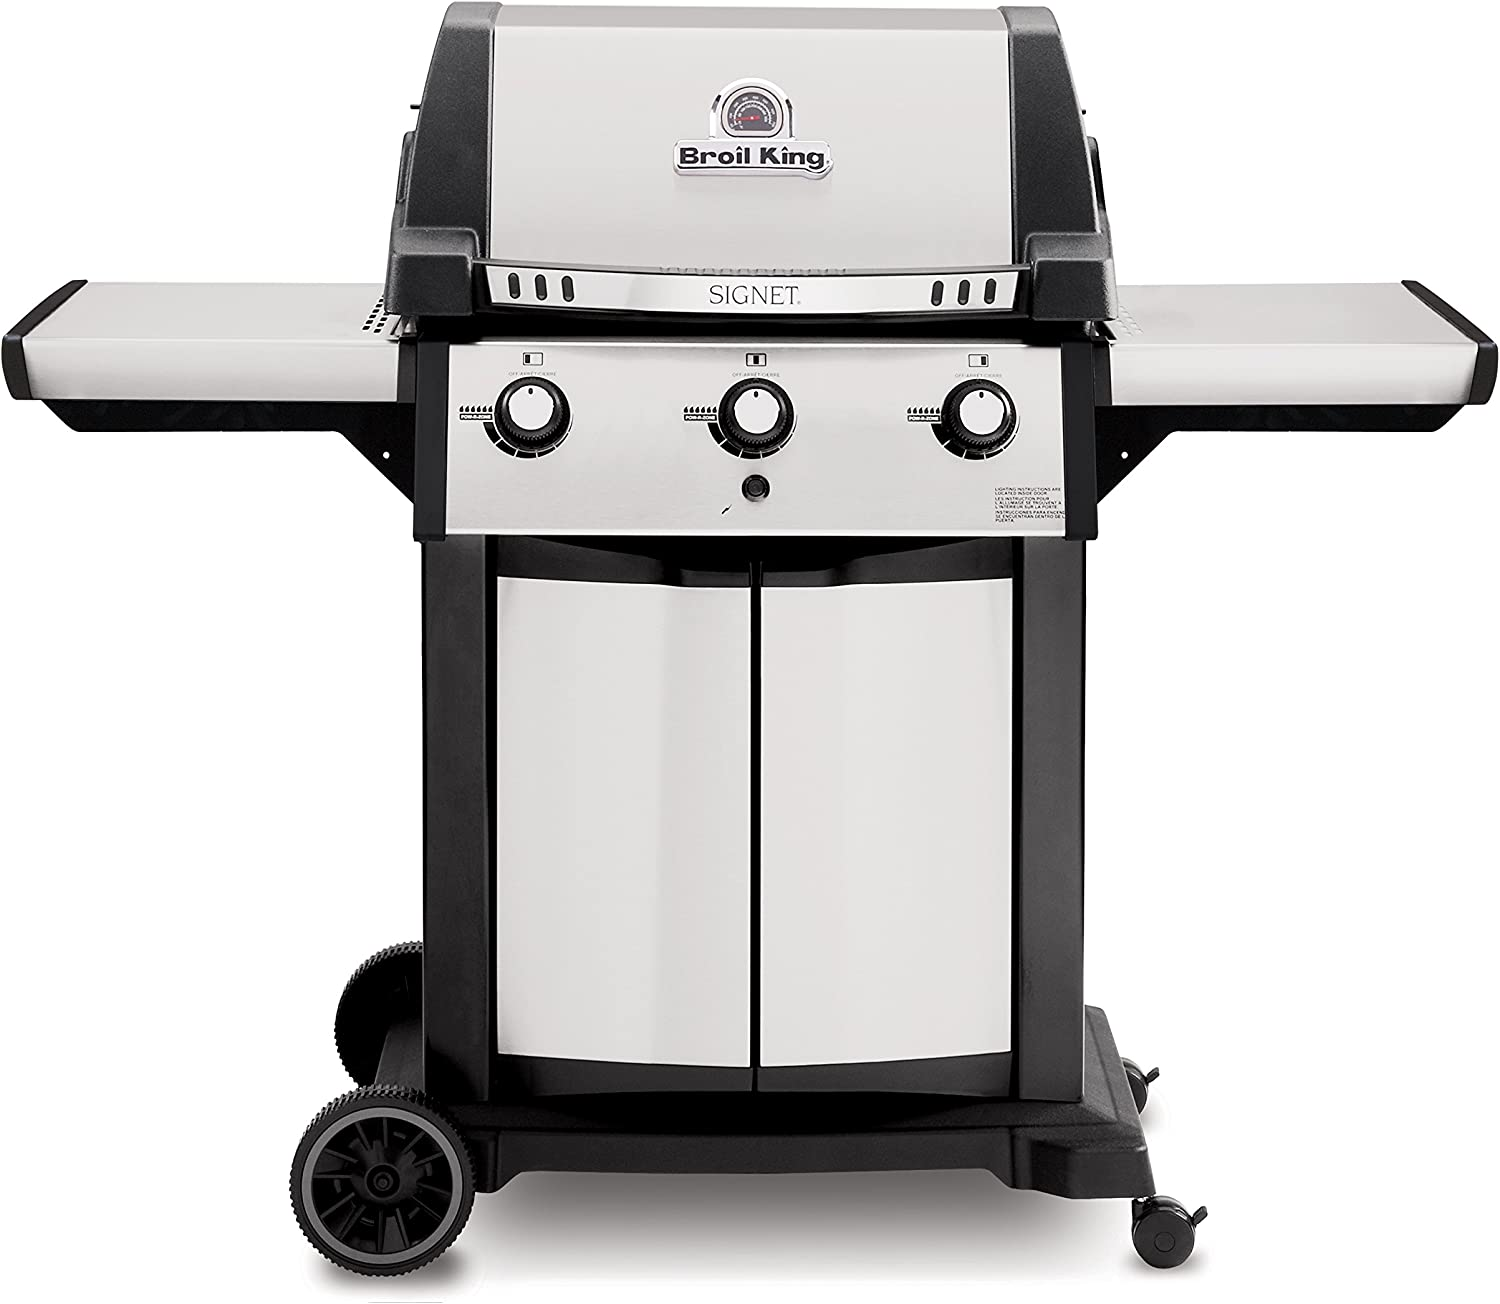 The Broil King Signet 320 grill review